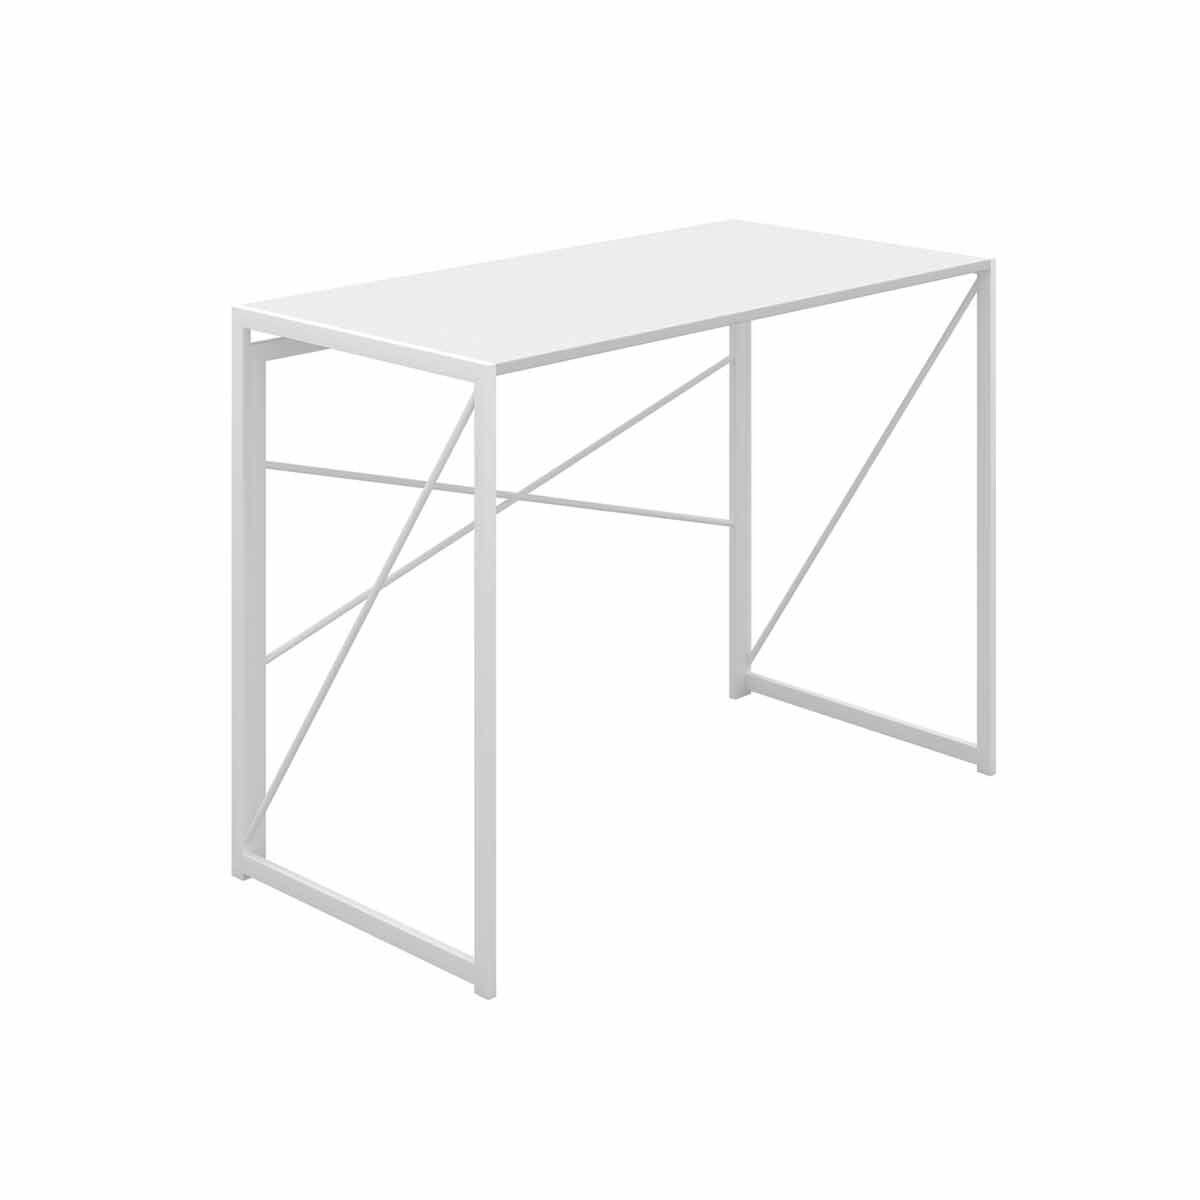 TC Office SOHO Home Working Desk with Cross Supports